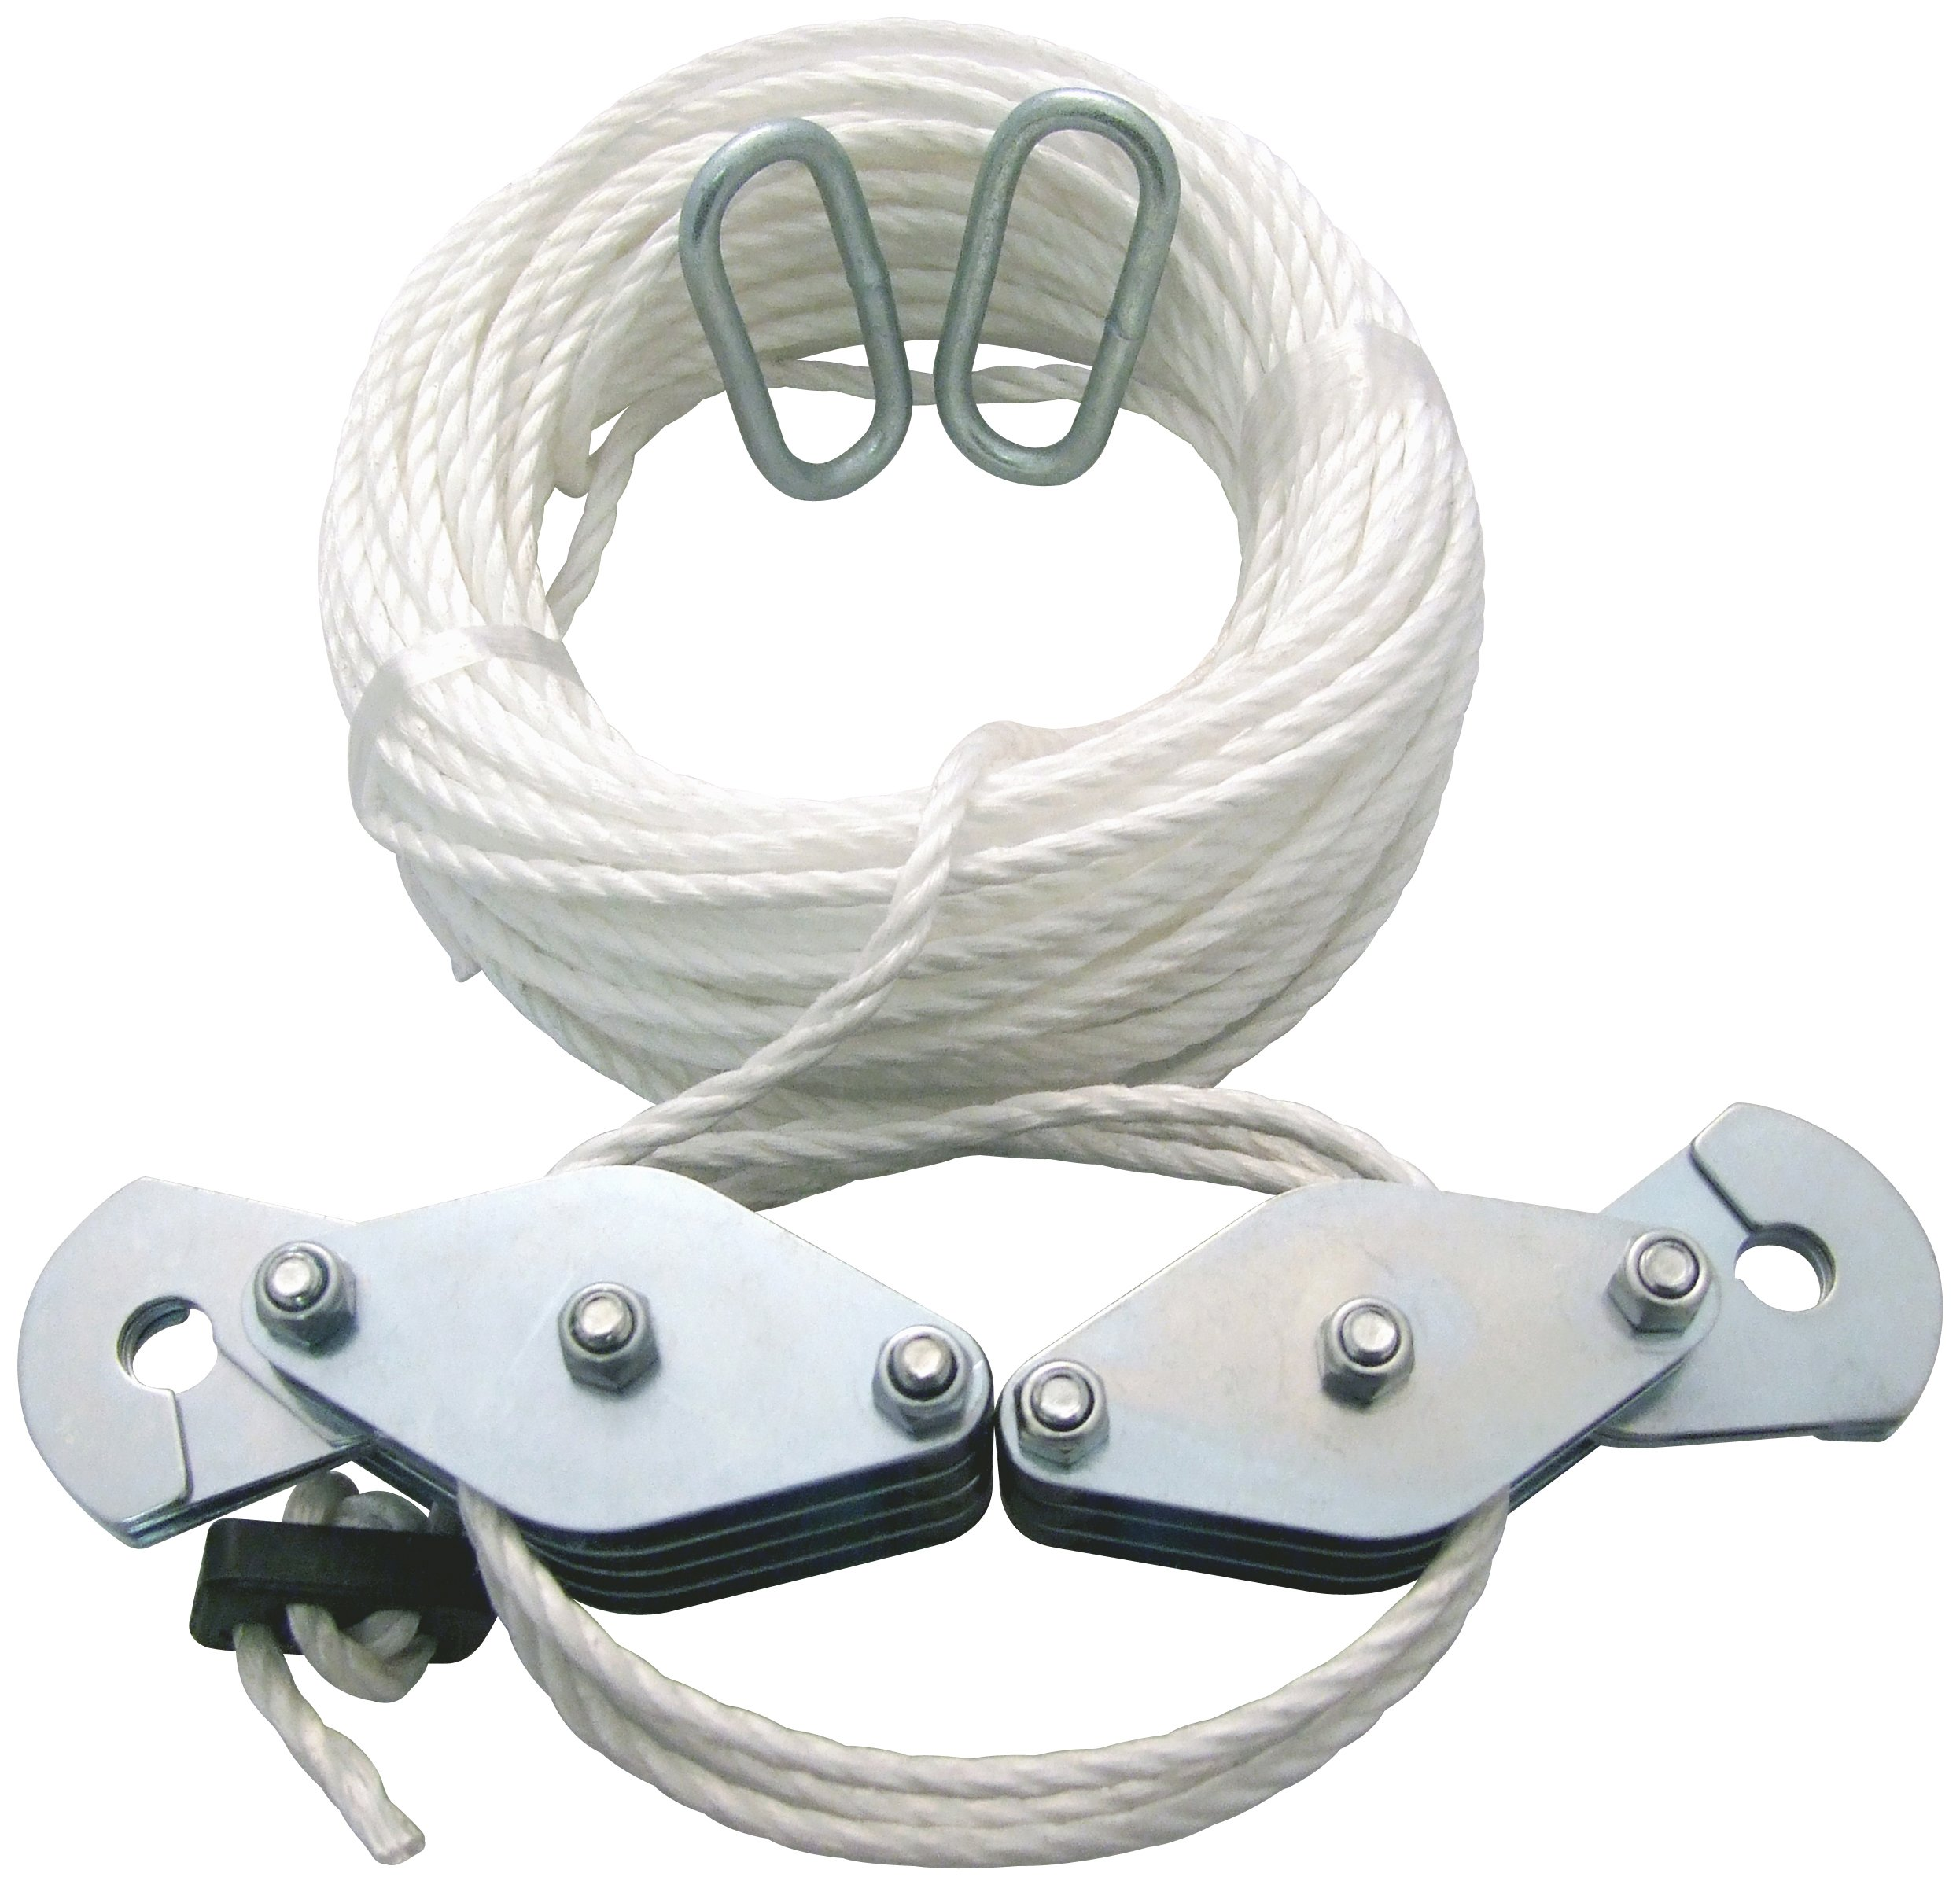 Silverline Cable Pulley Set 180kg 633957